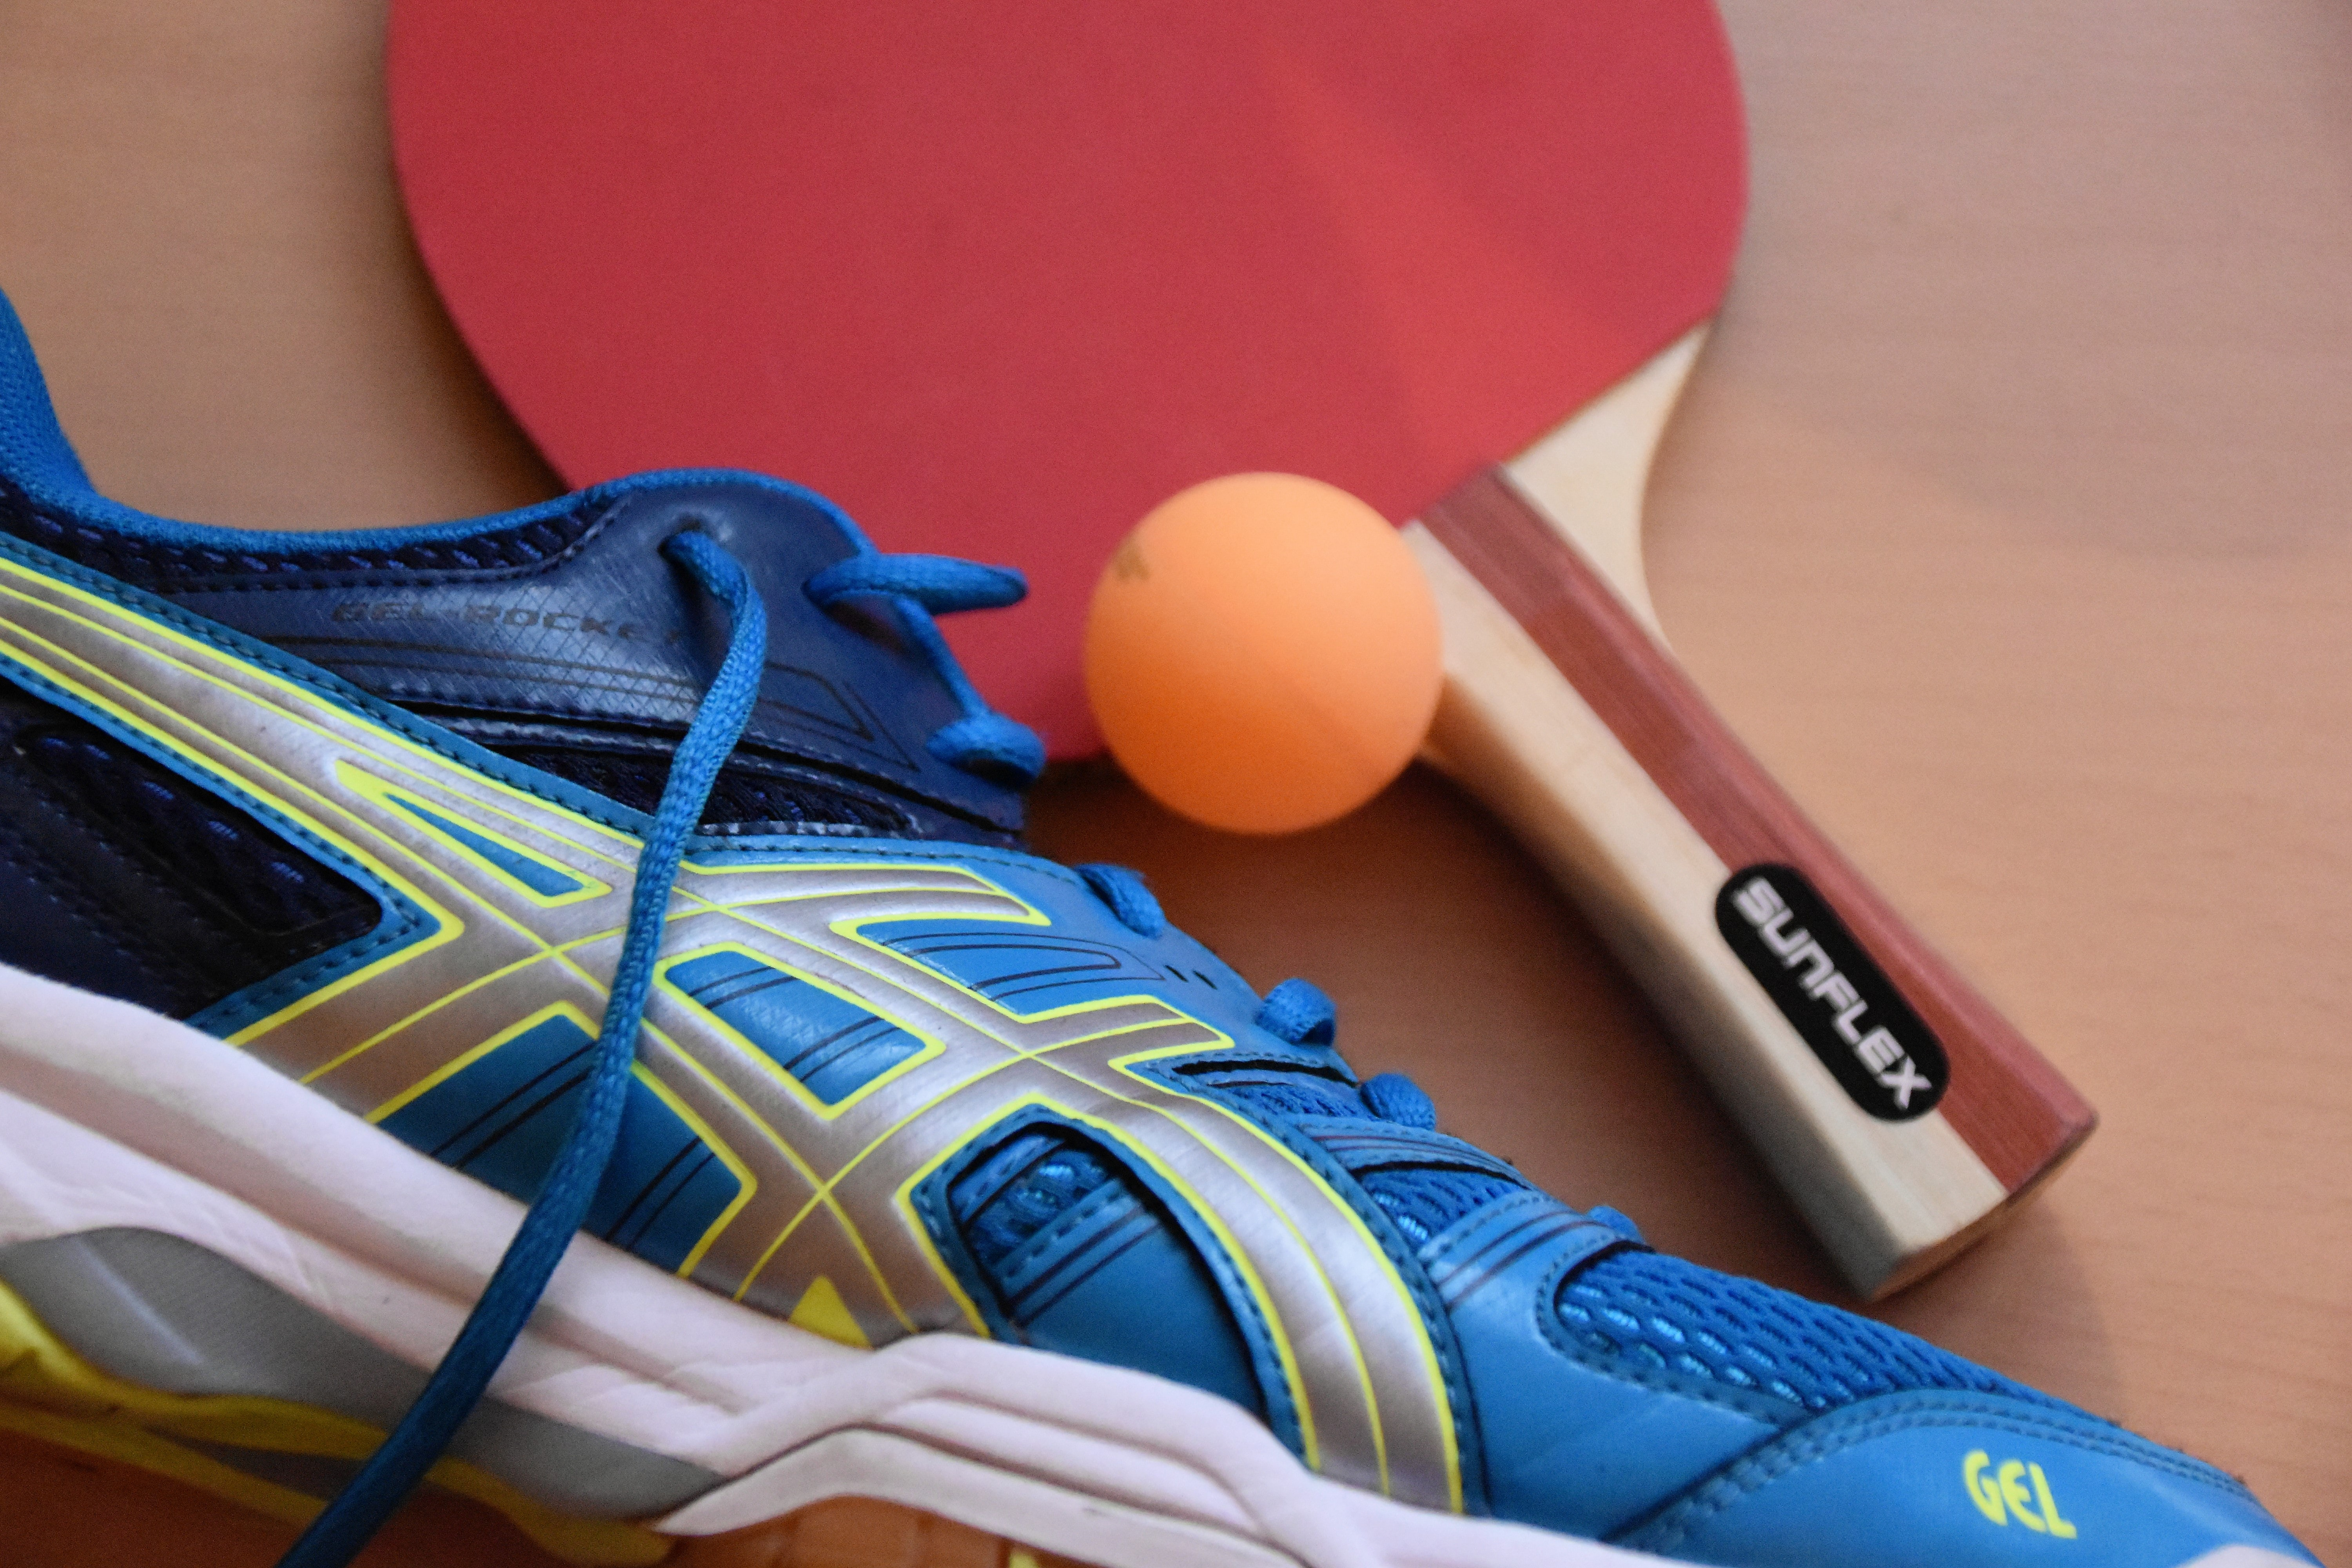 blue and black ASICS running shoes near ping pong paddle and ball